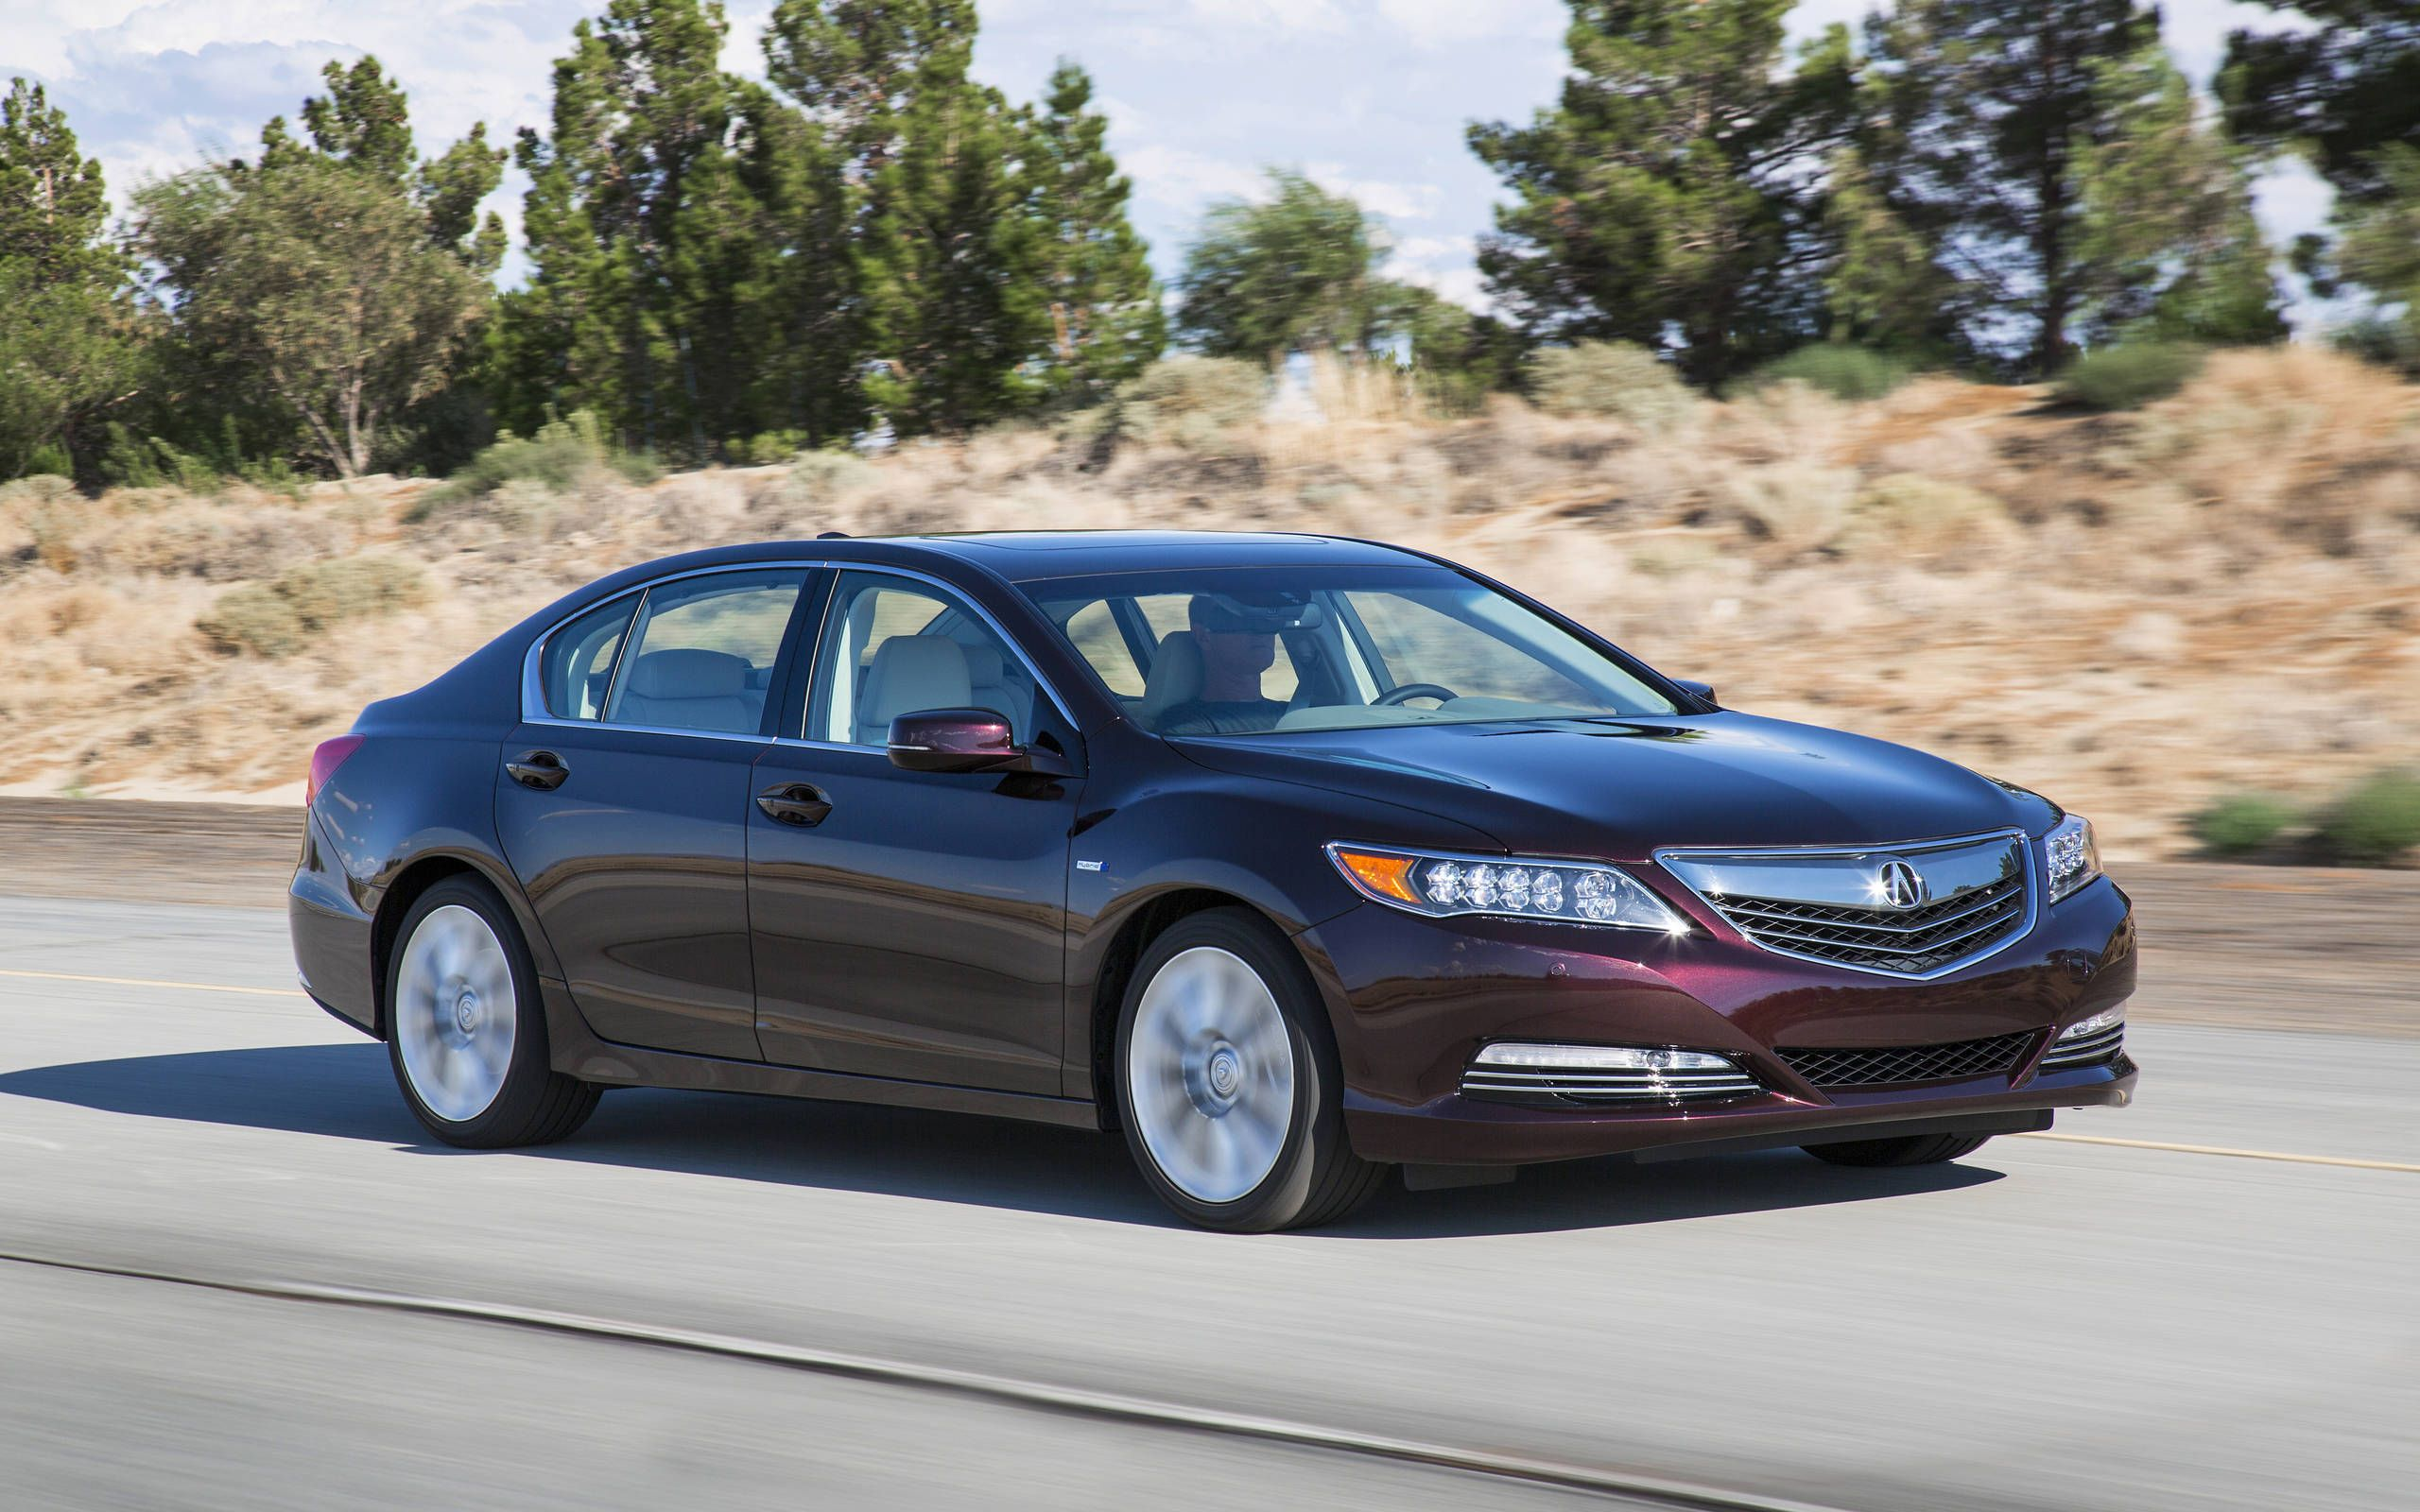 2016 Acura Rlx Sport Hybrid Review Notes Interesting Gadgets But Kind Of A Snoozer